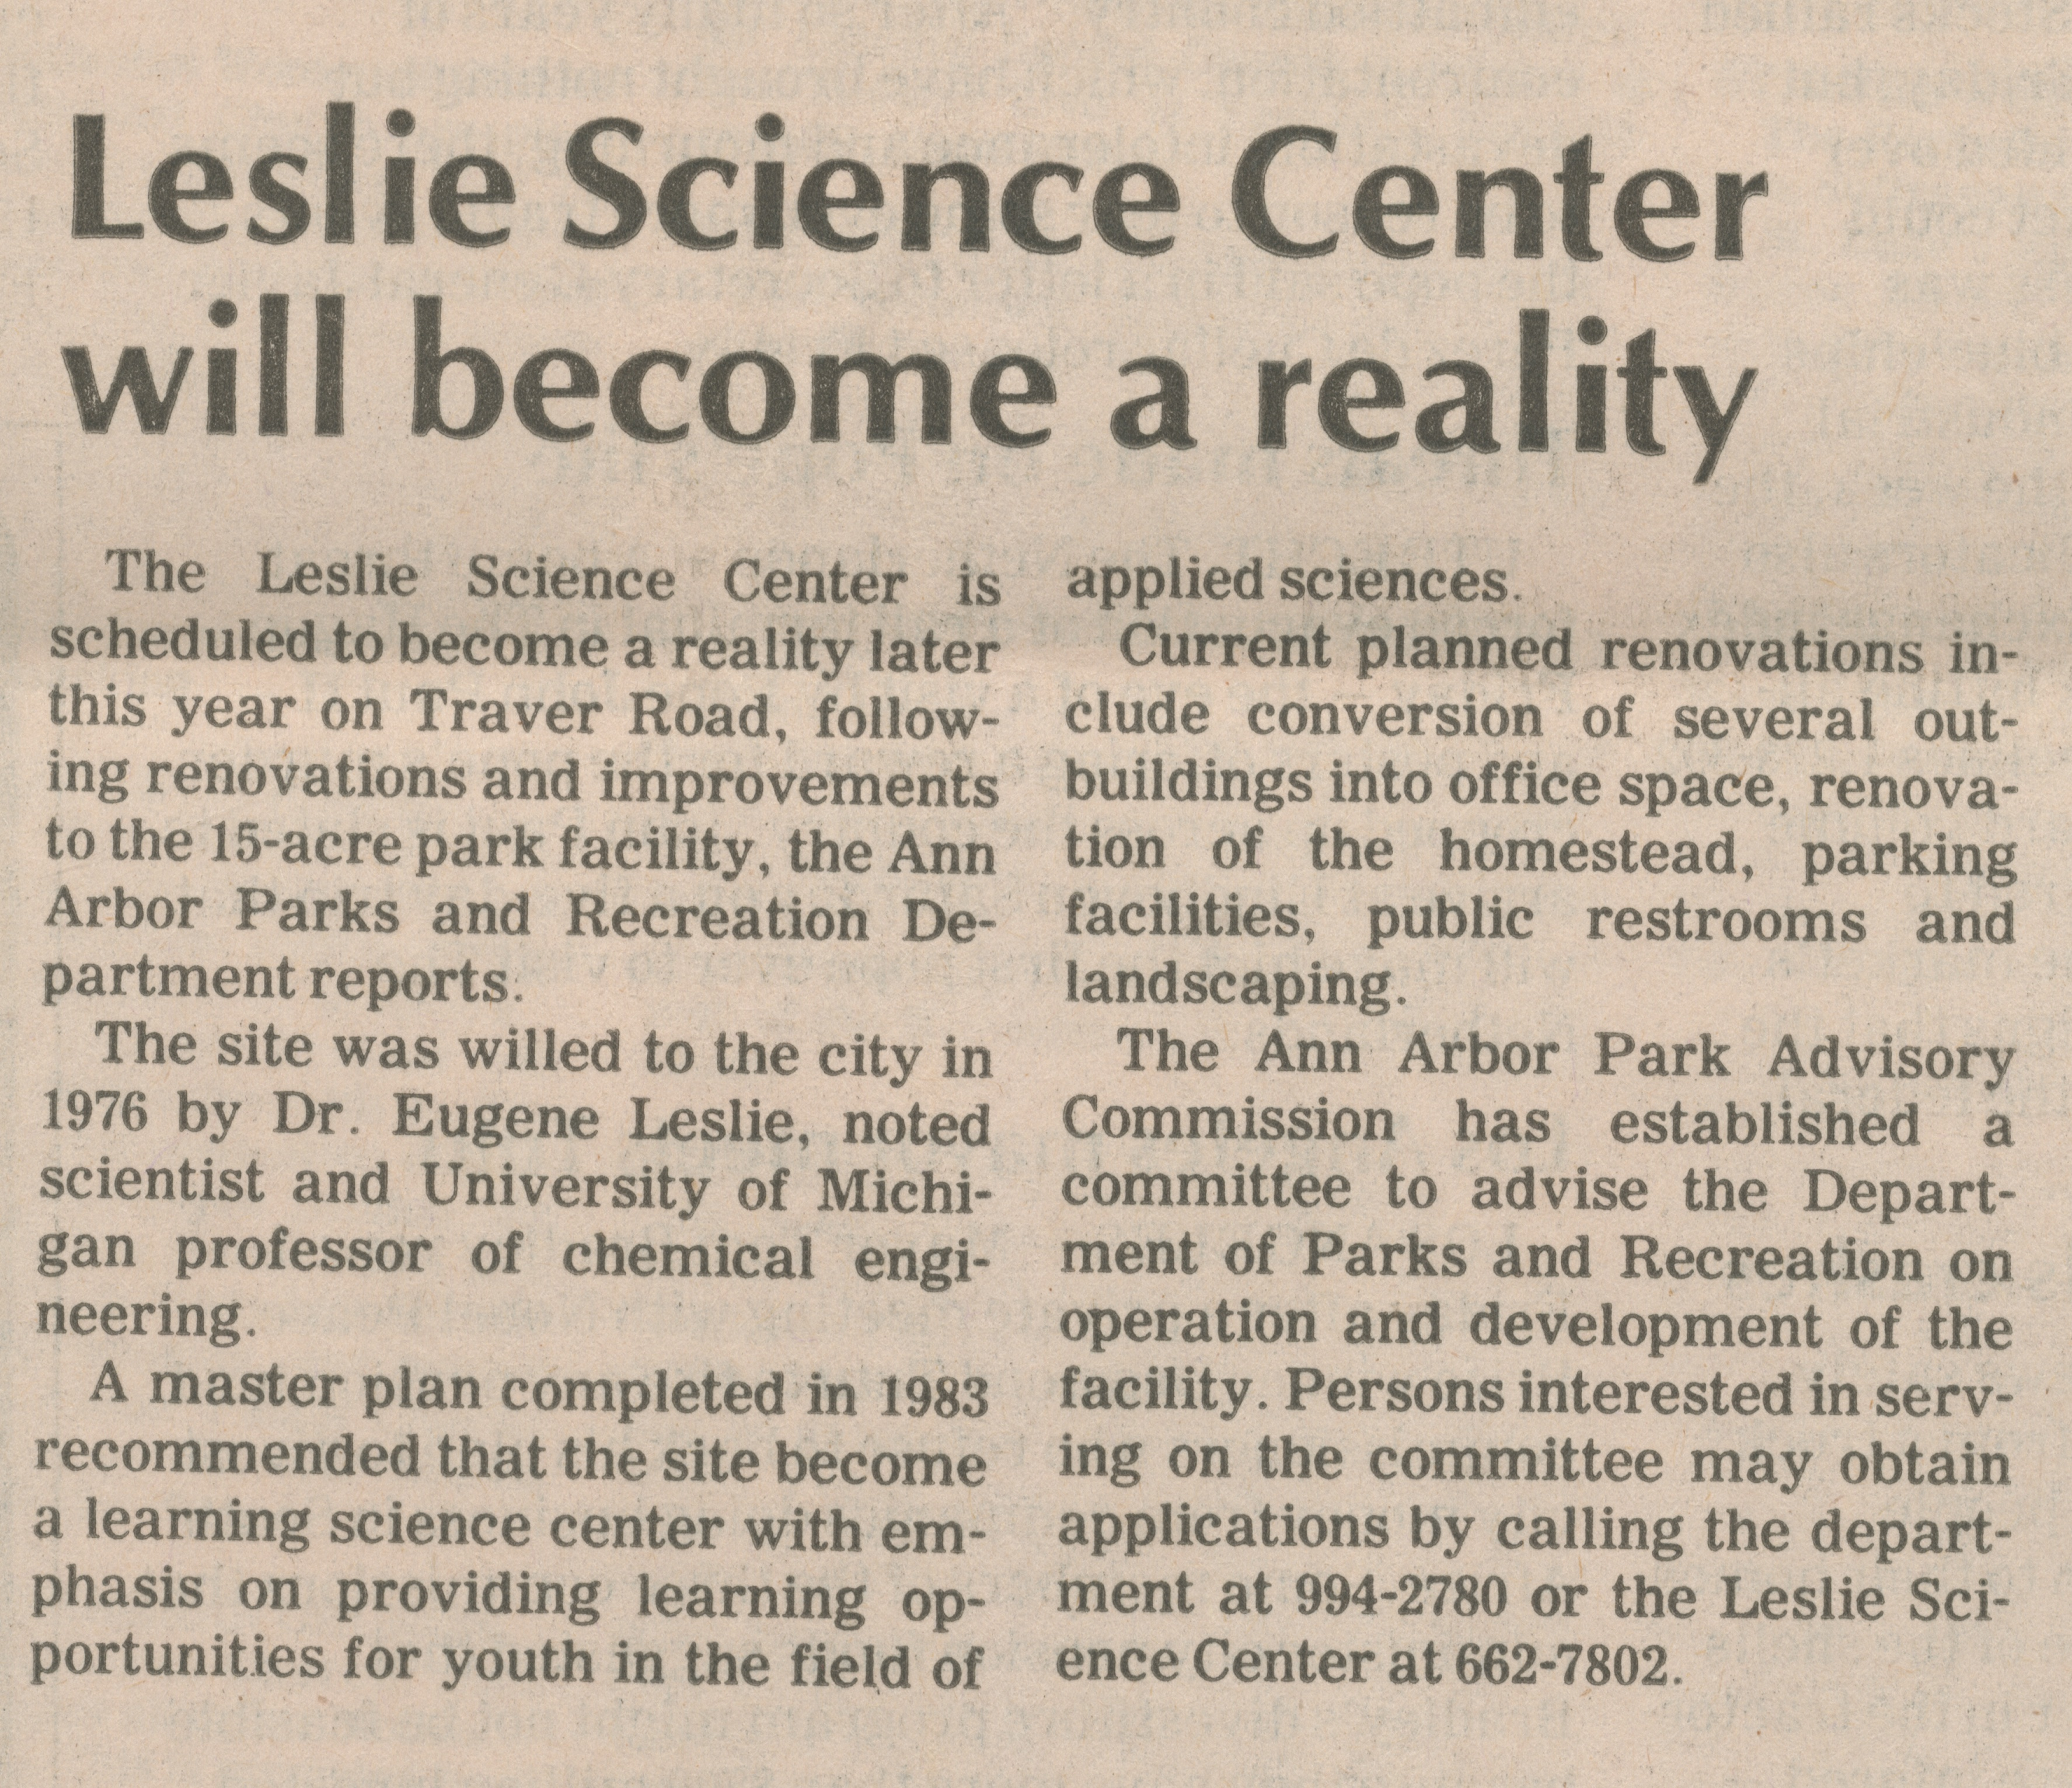 Leslie Science Center will become a reality image